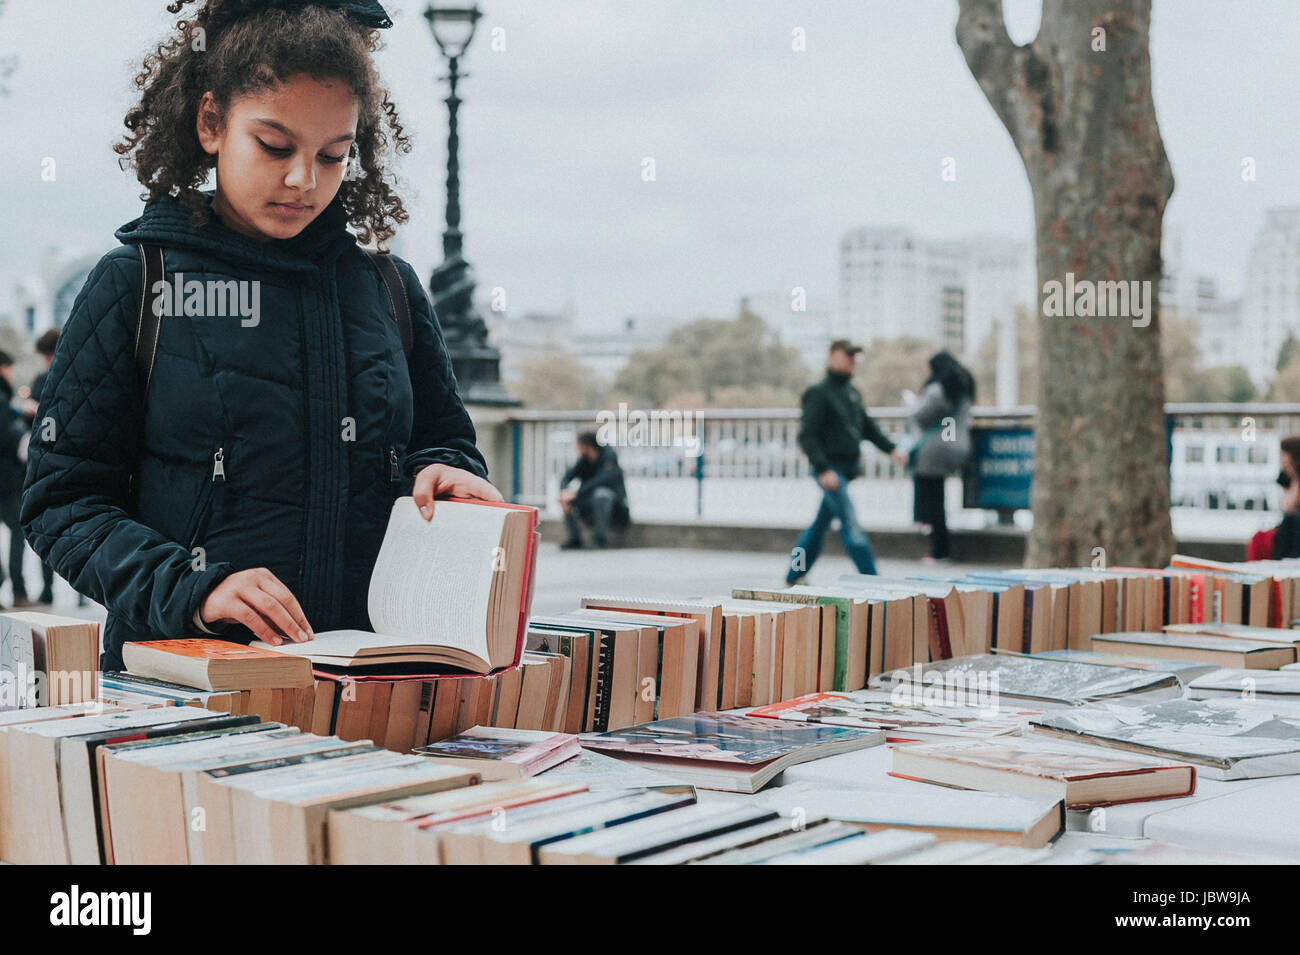 A 10 years old child is browsing second hand books at Southbank Centre Book Market, London. - Stock Image